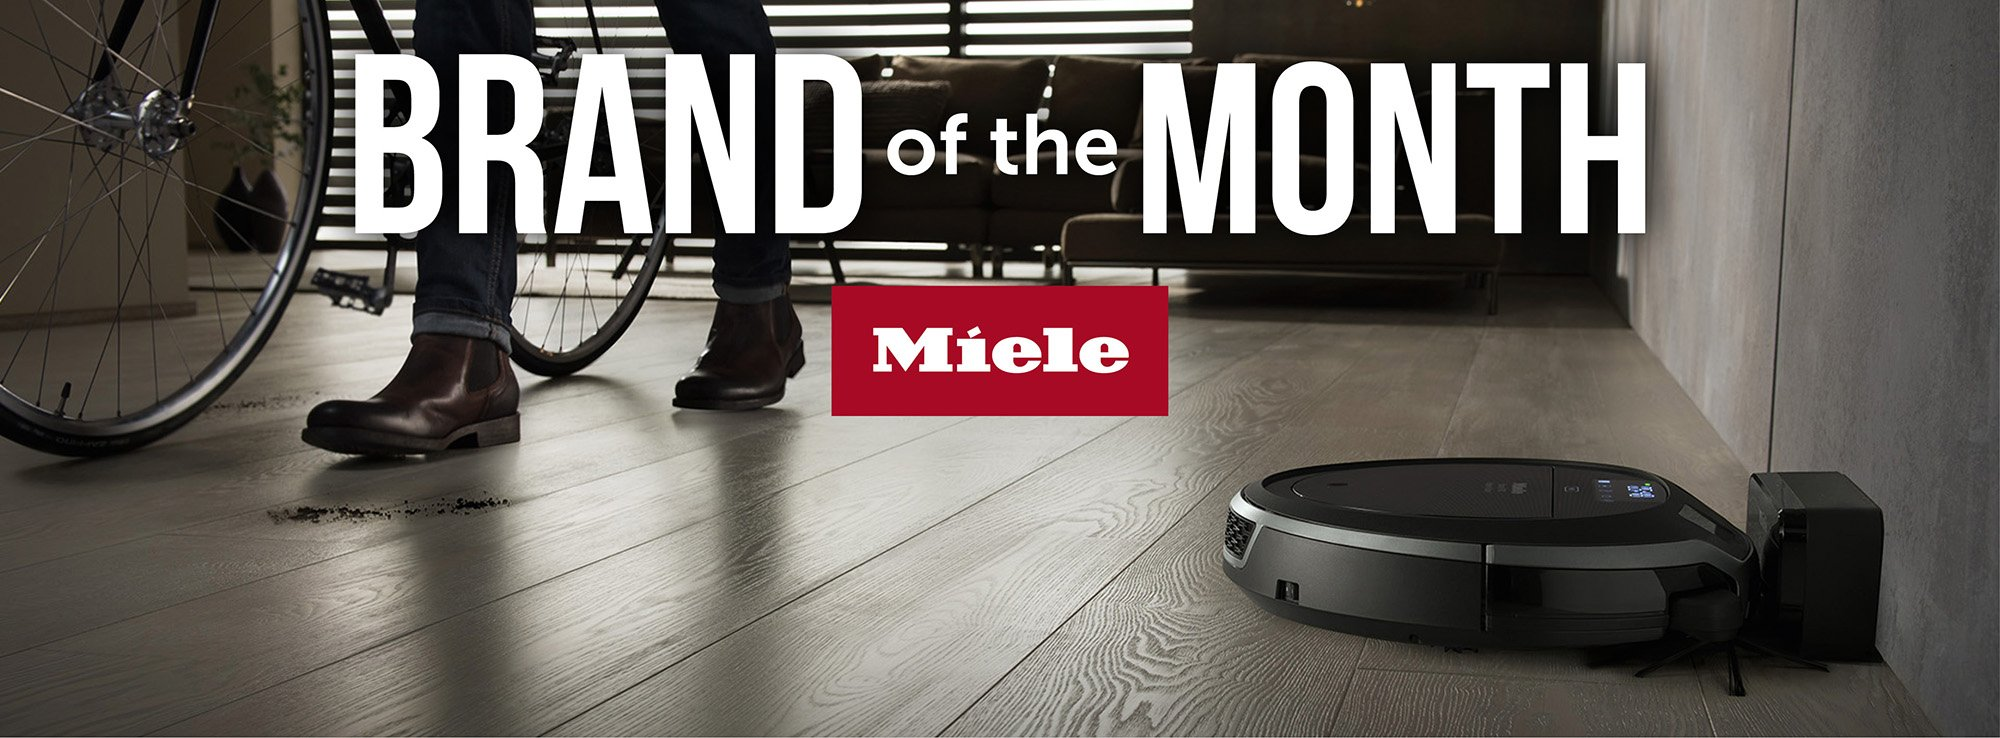 Miele Brand of the Month